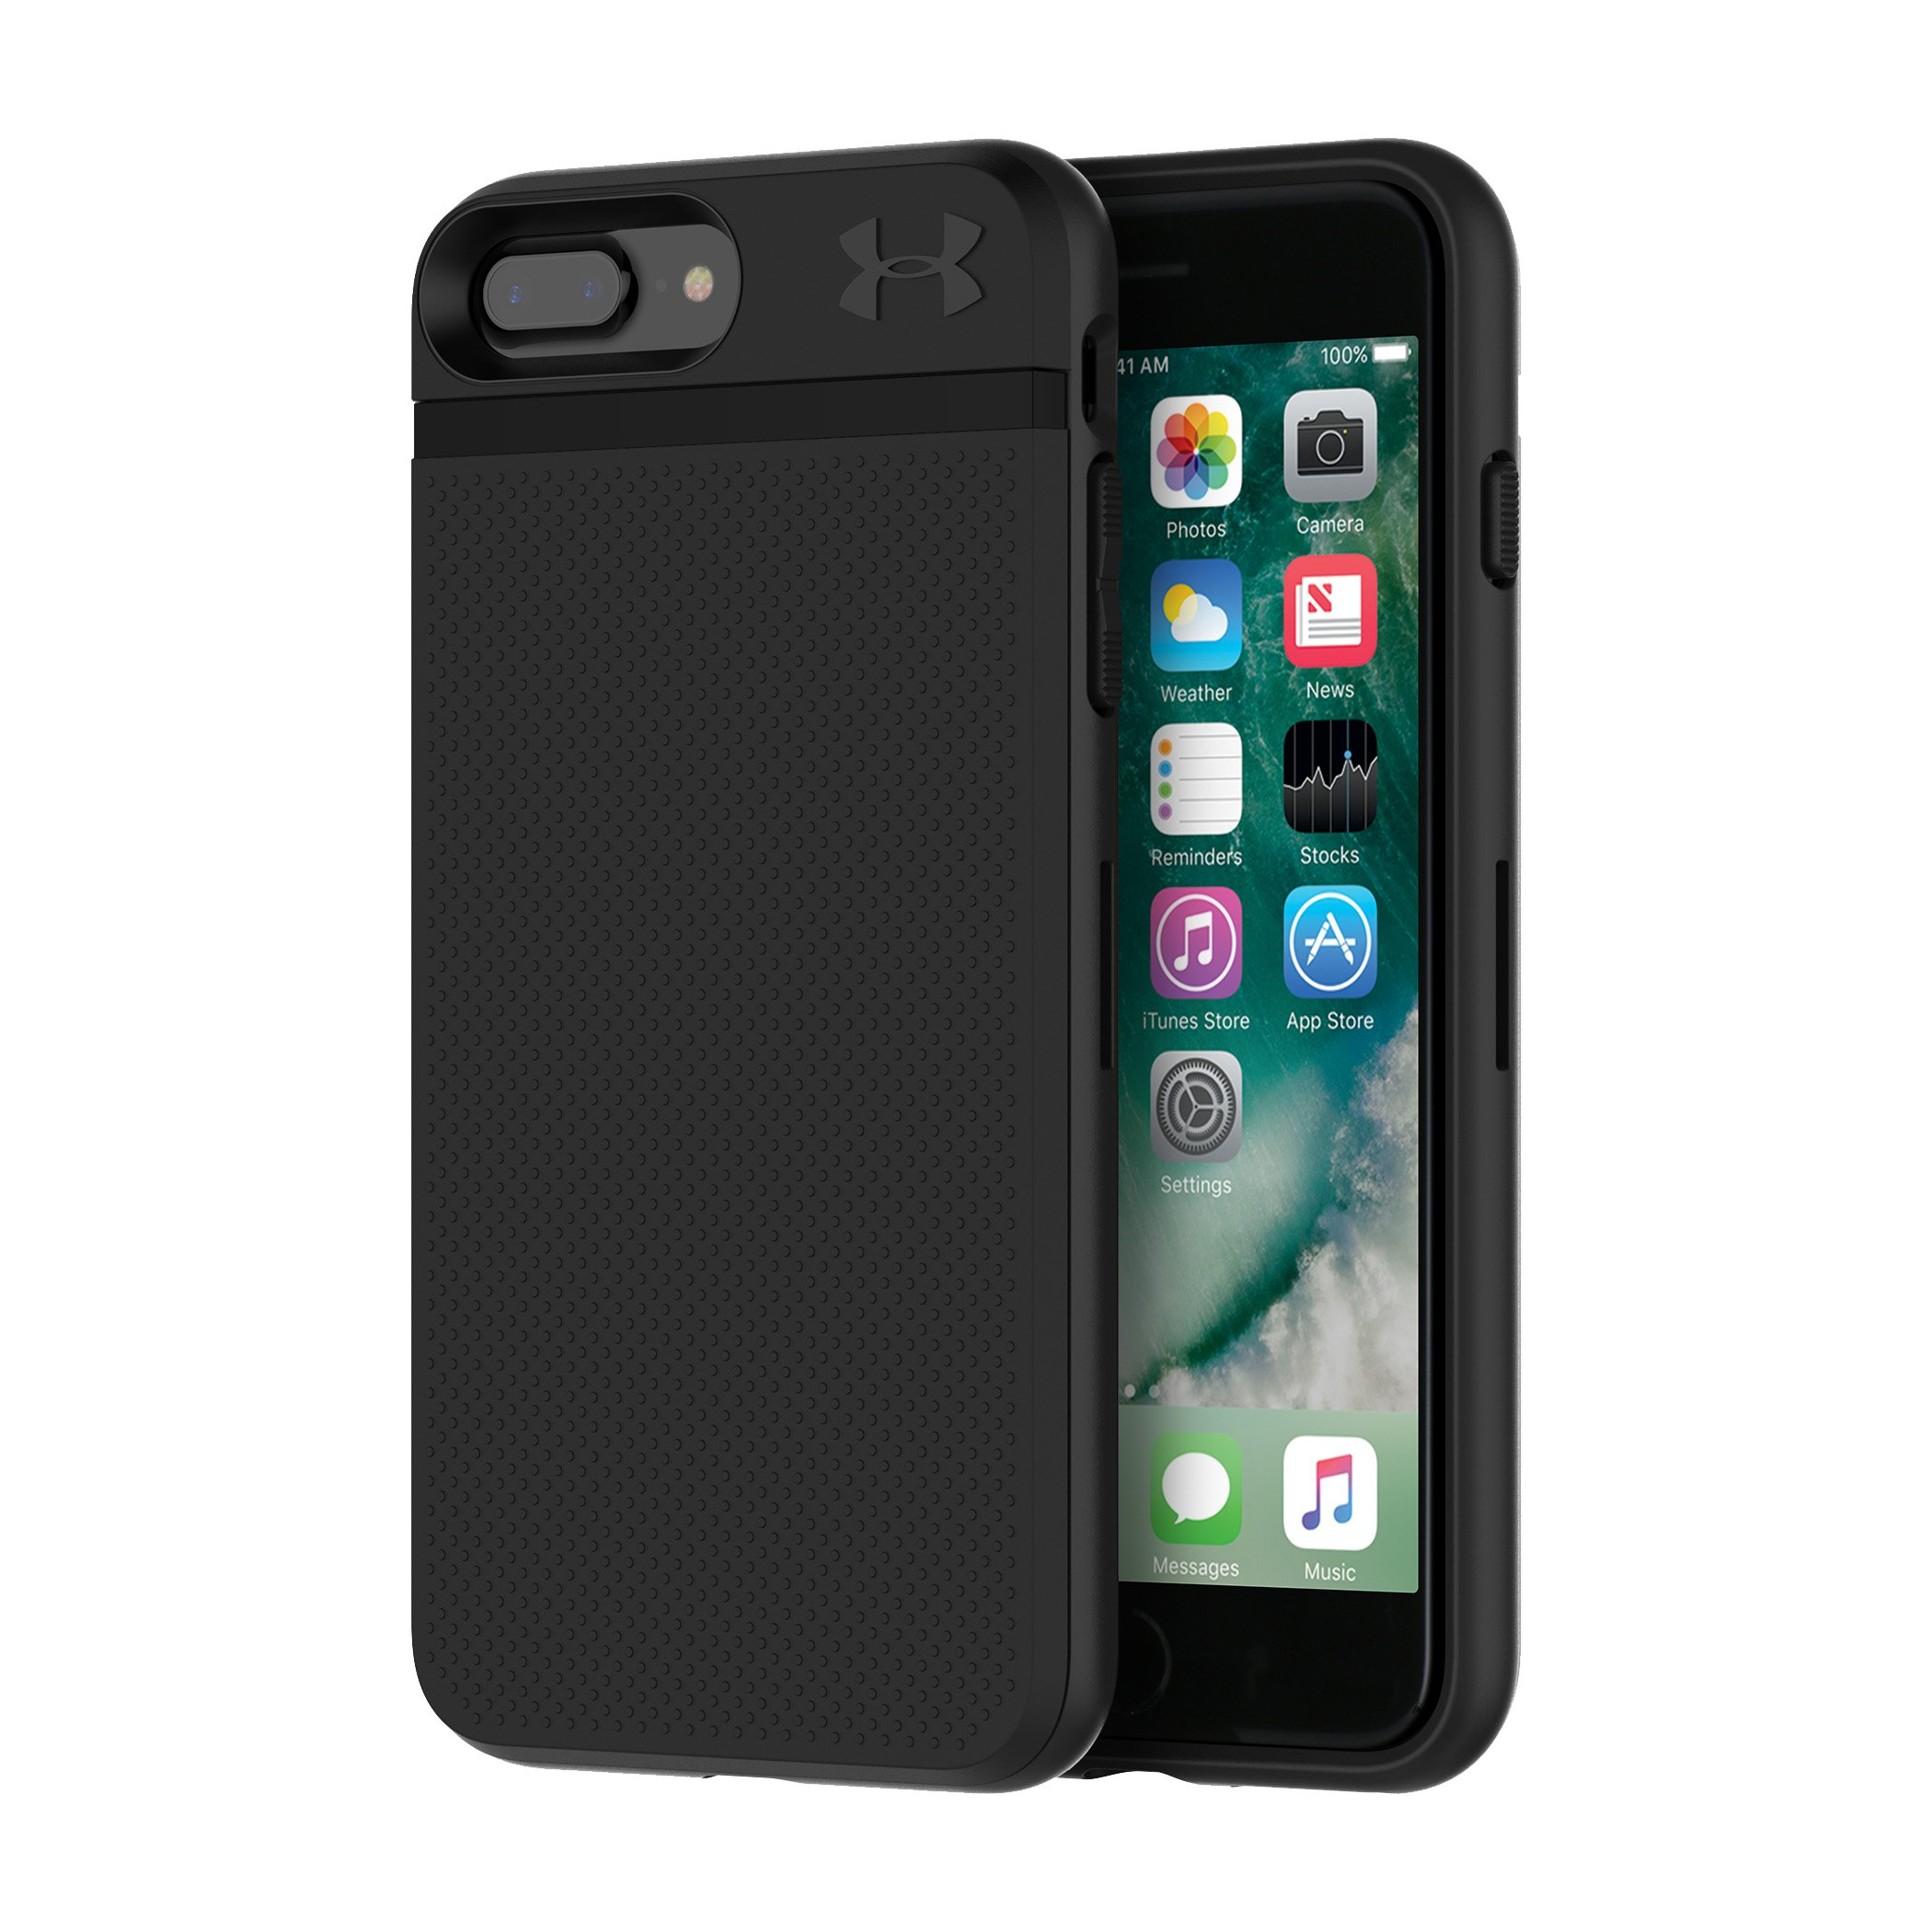 simple cases UA Protect Stash Case for iPhone 8 Plus/7 Plus Quick & <strong>easy</strong> installation.